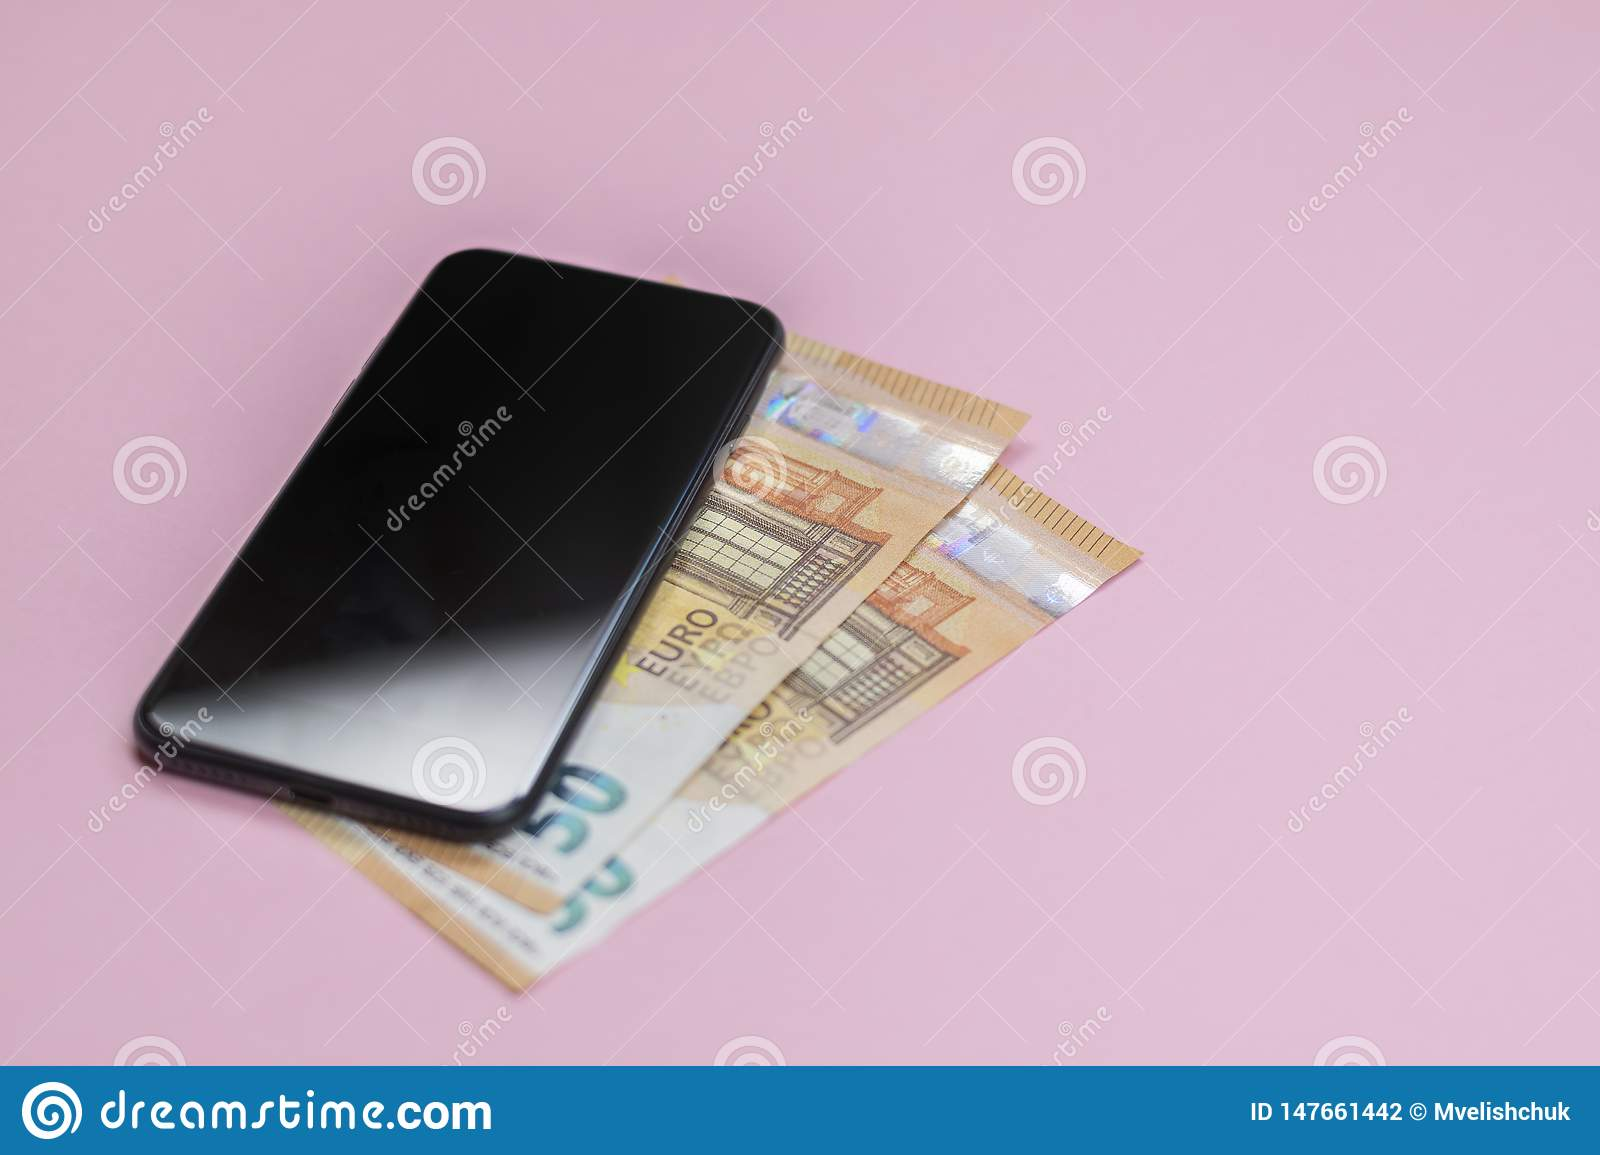 Close-up of smart phone with money on a pink background.